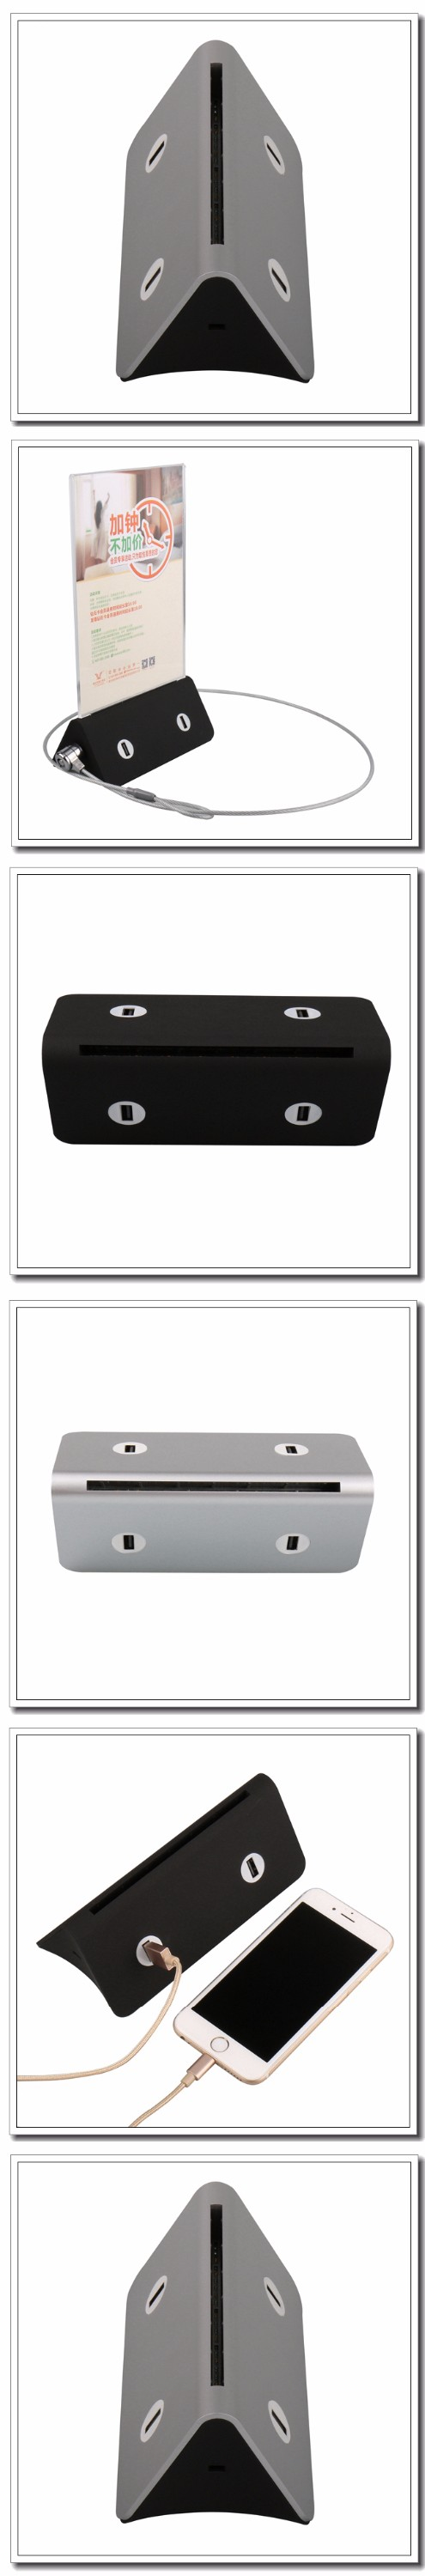 6000mah to 13000 mah menu table top docking powstation charger holder with key lock for restaurant/coffee shop/bar/tea shop